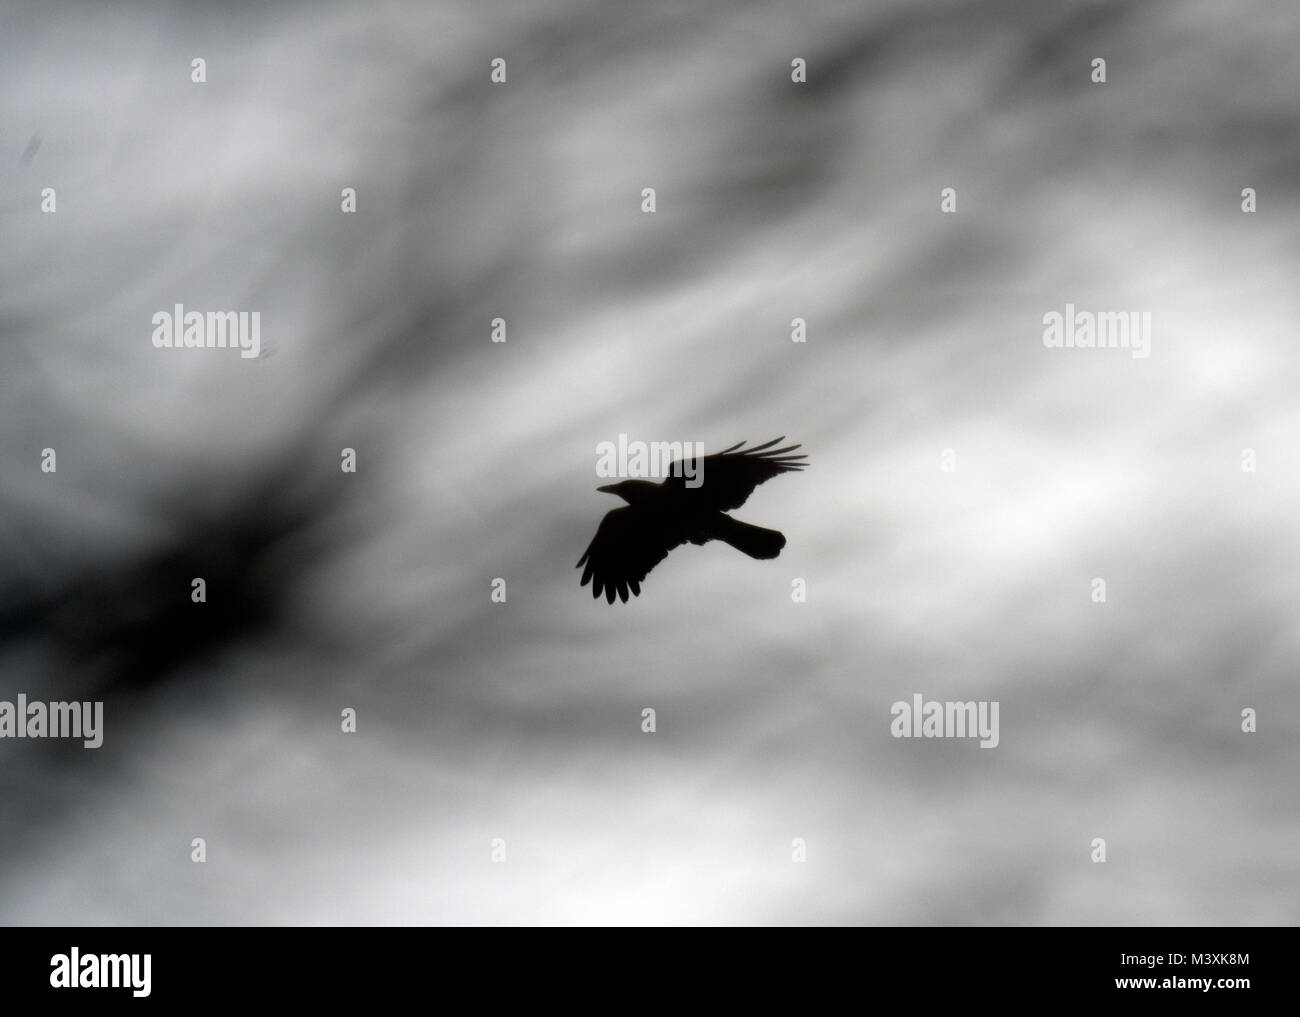 Crow in the Clouds - Stock Image